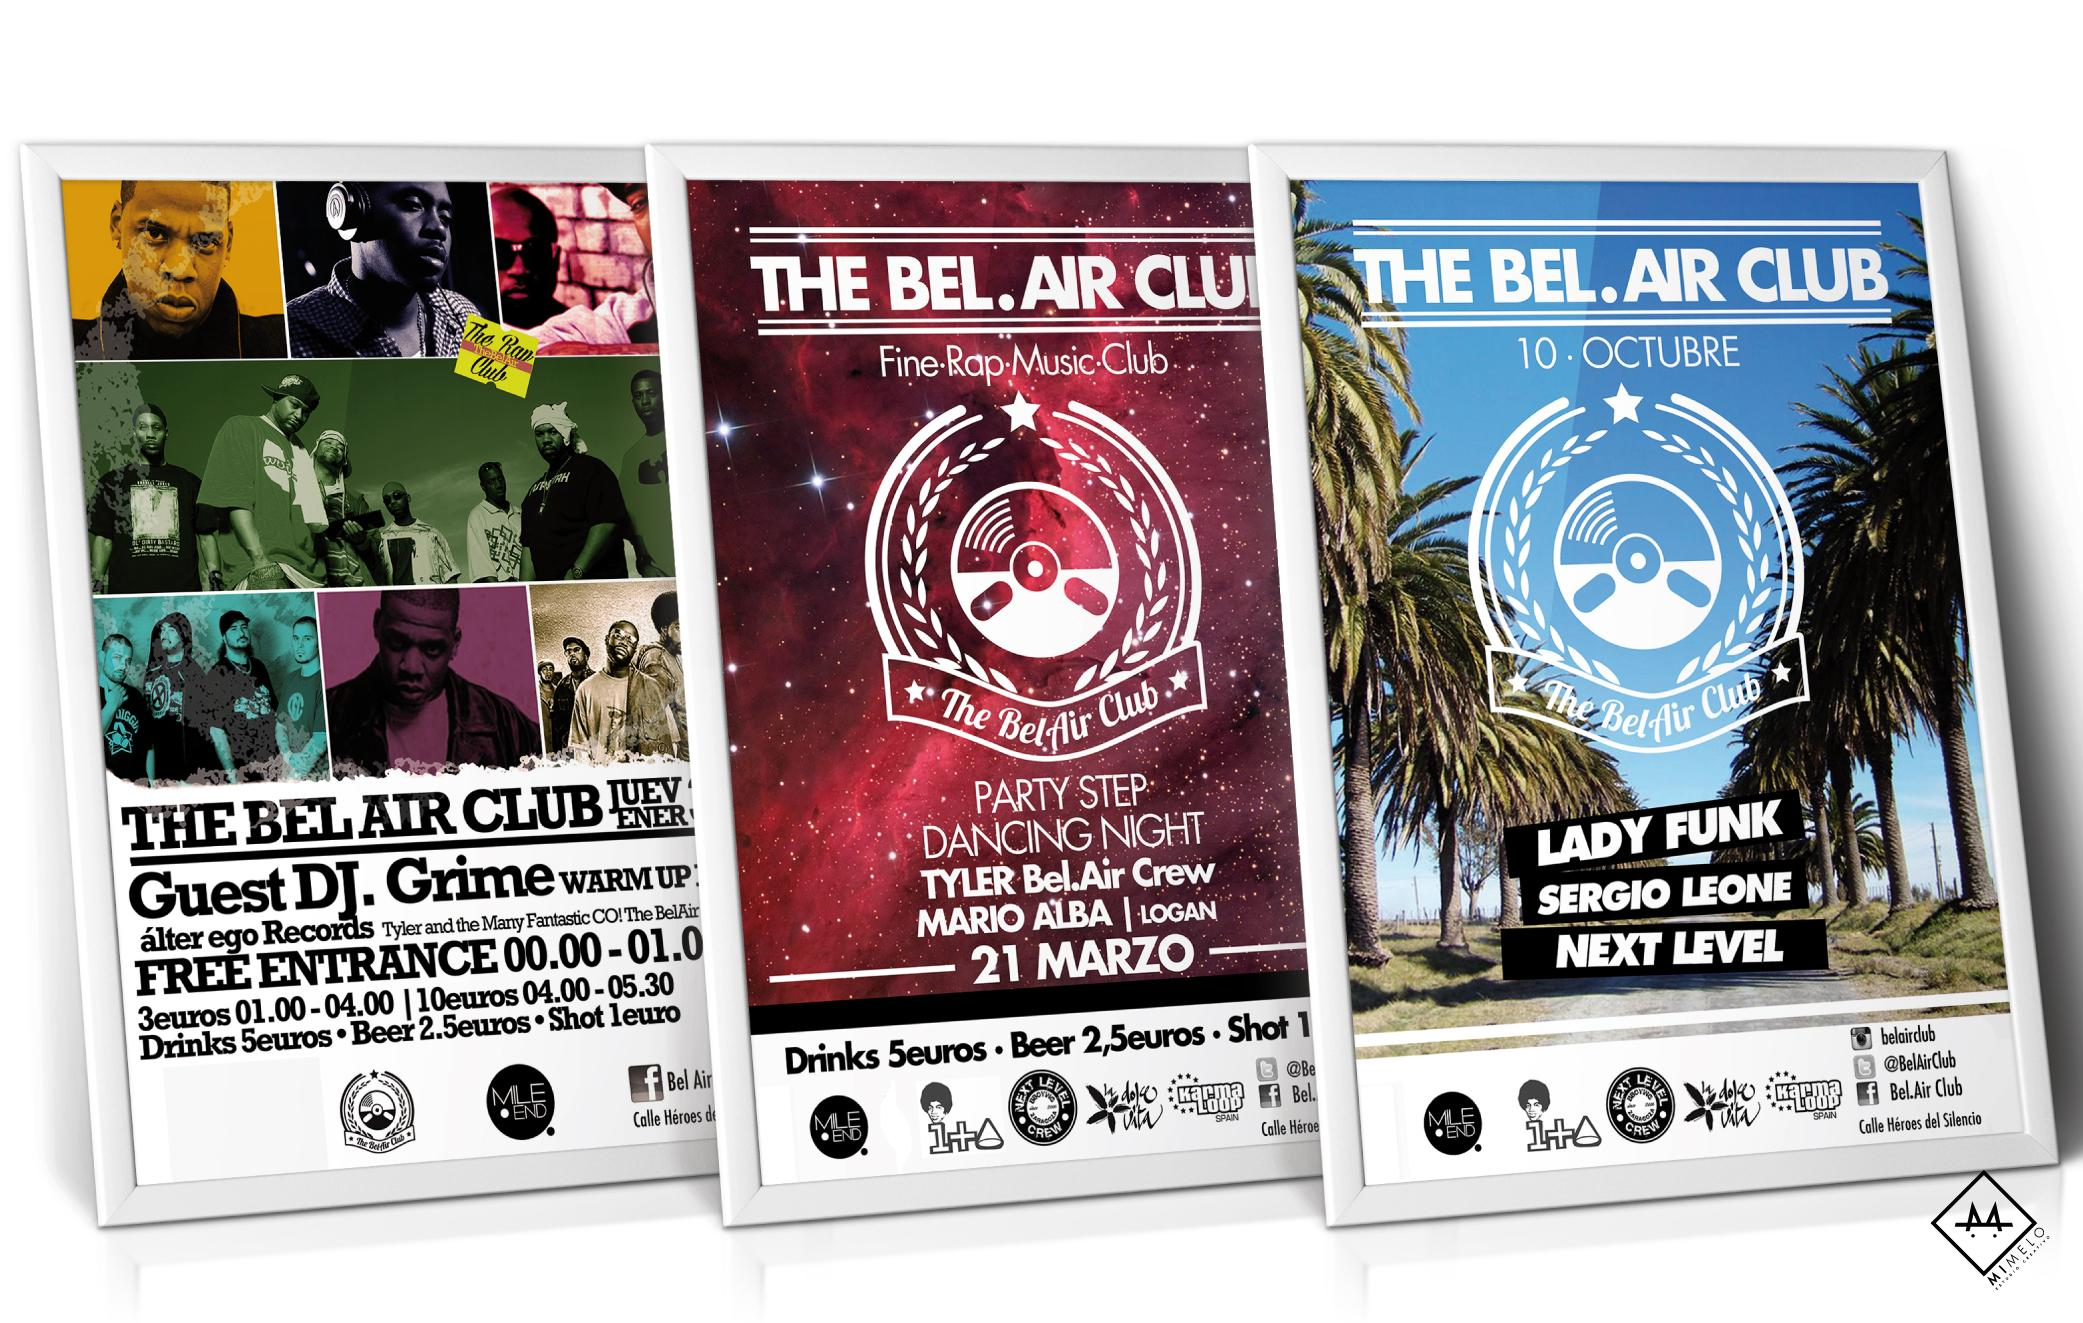 BelAir Club - Mimelo Estudio Creativo